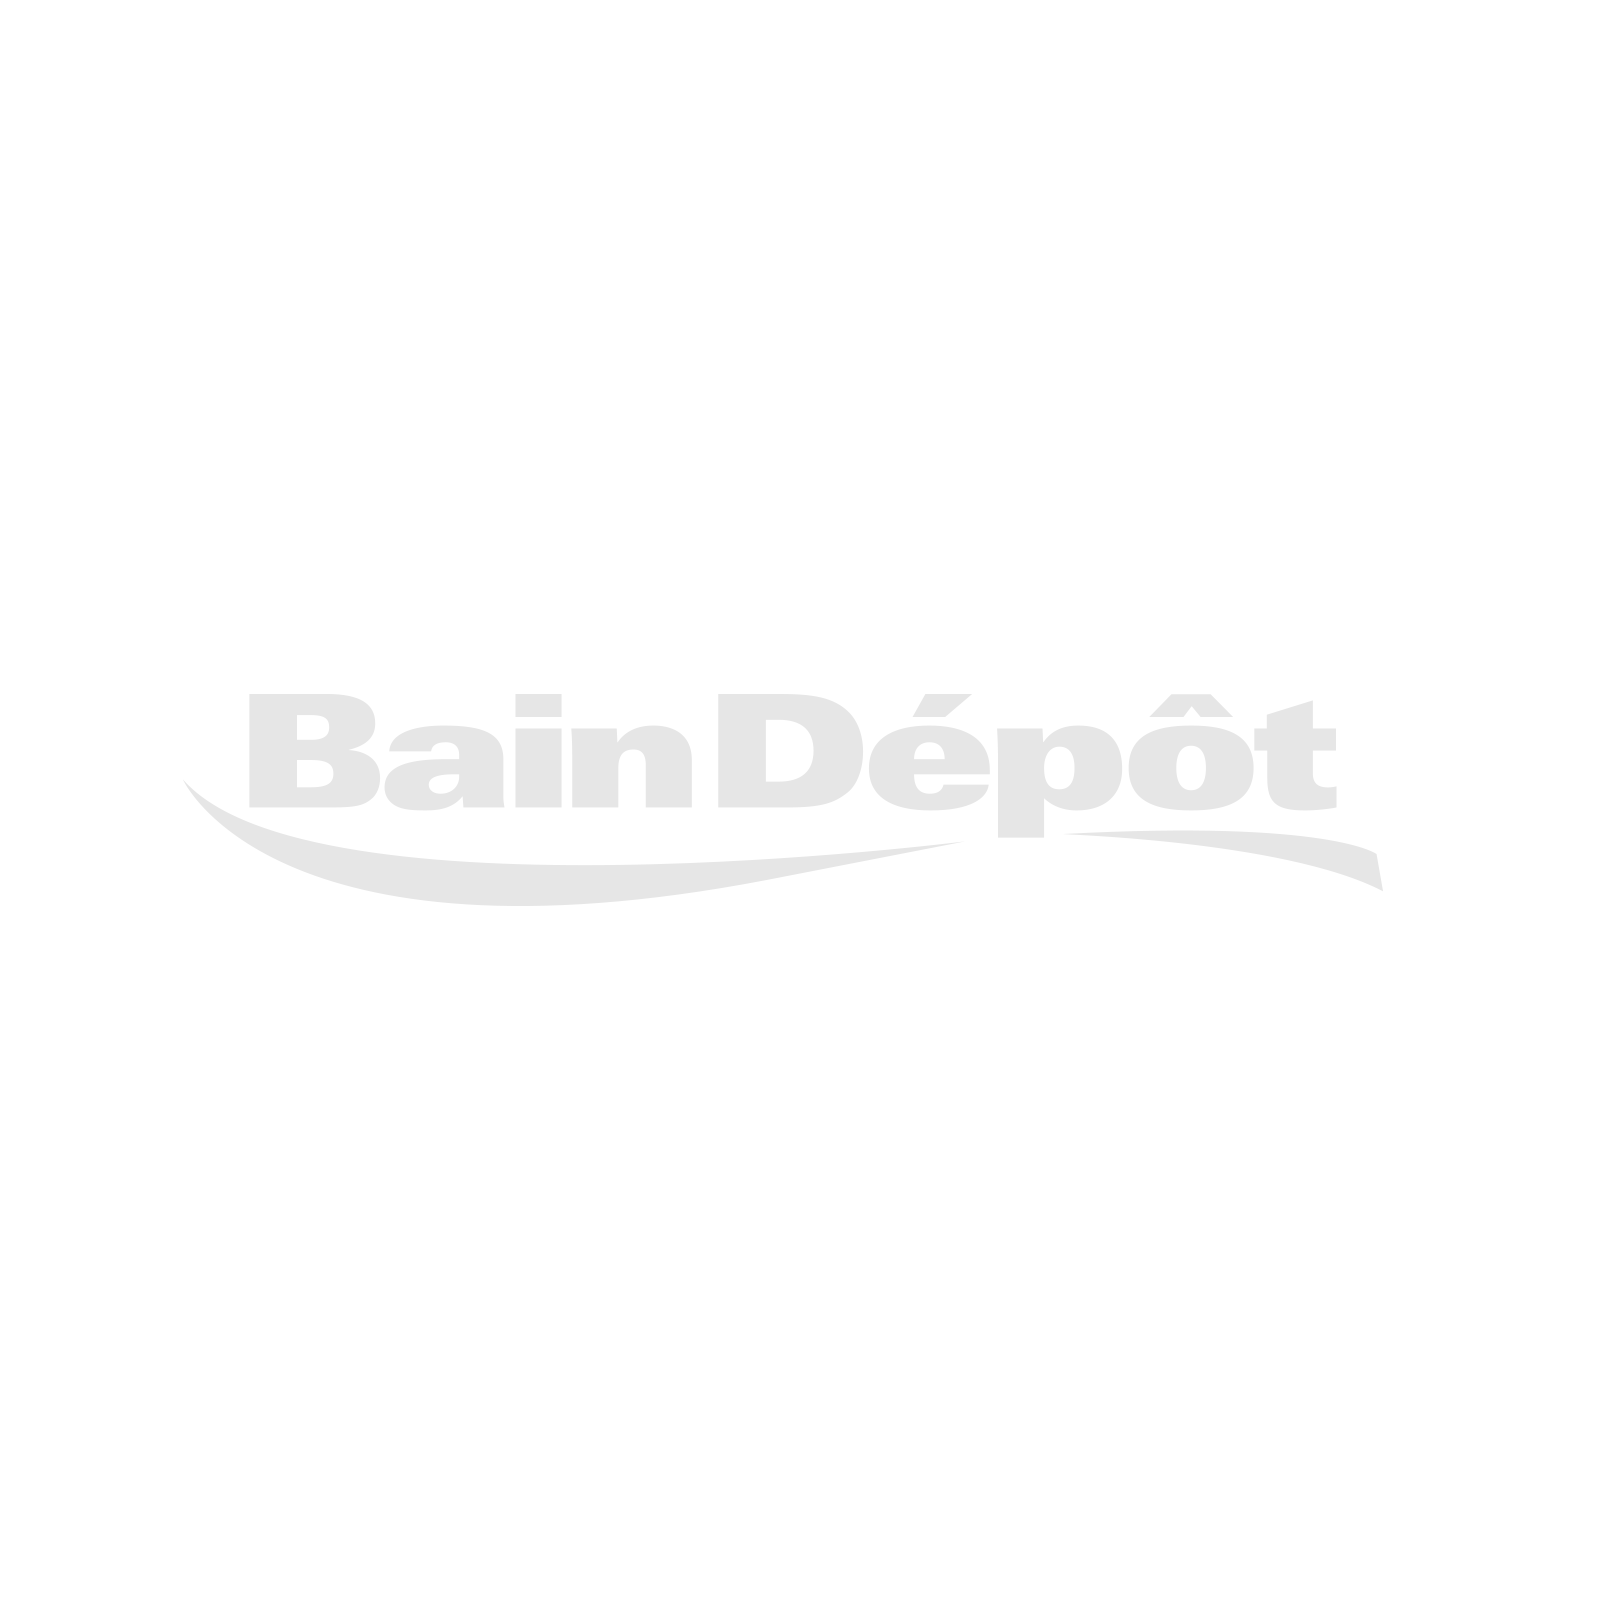 Matte black thermostatic tub-shower faucet with hand shower rail and bath spout